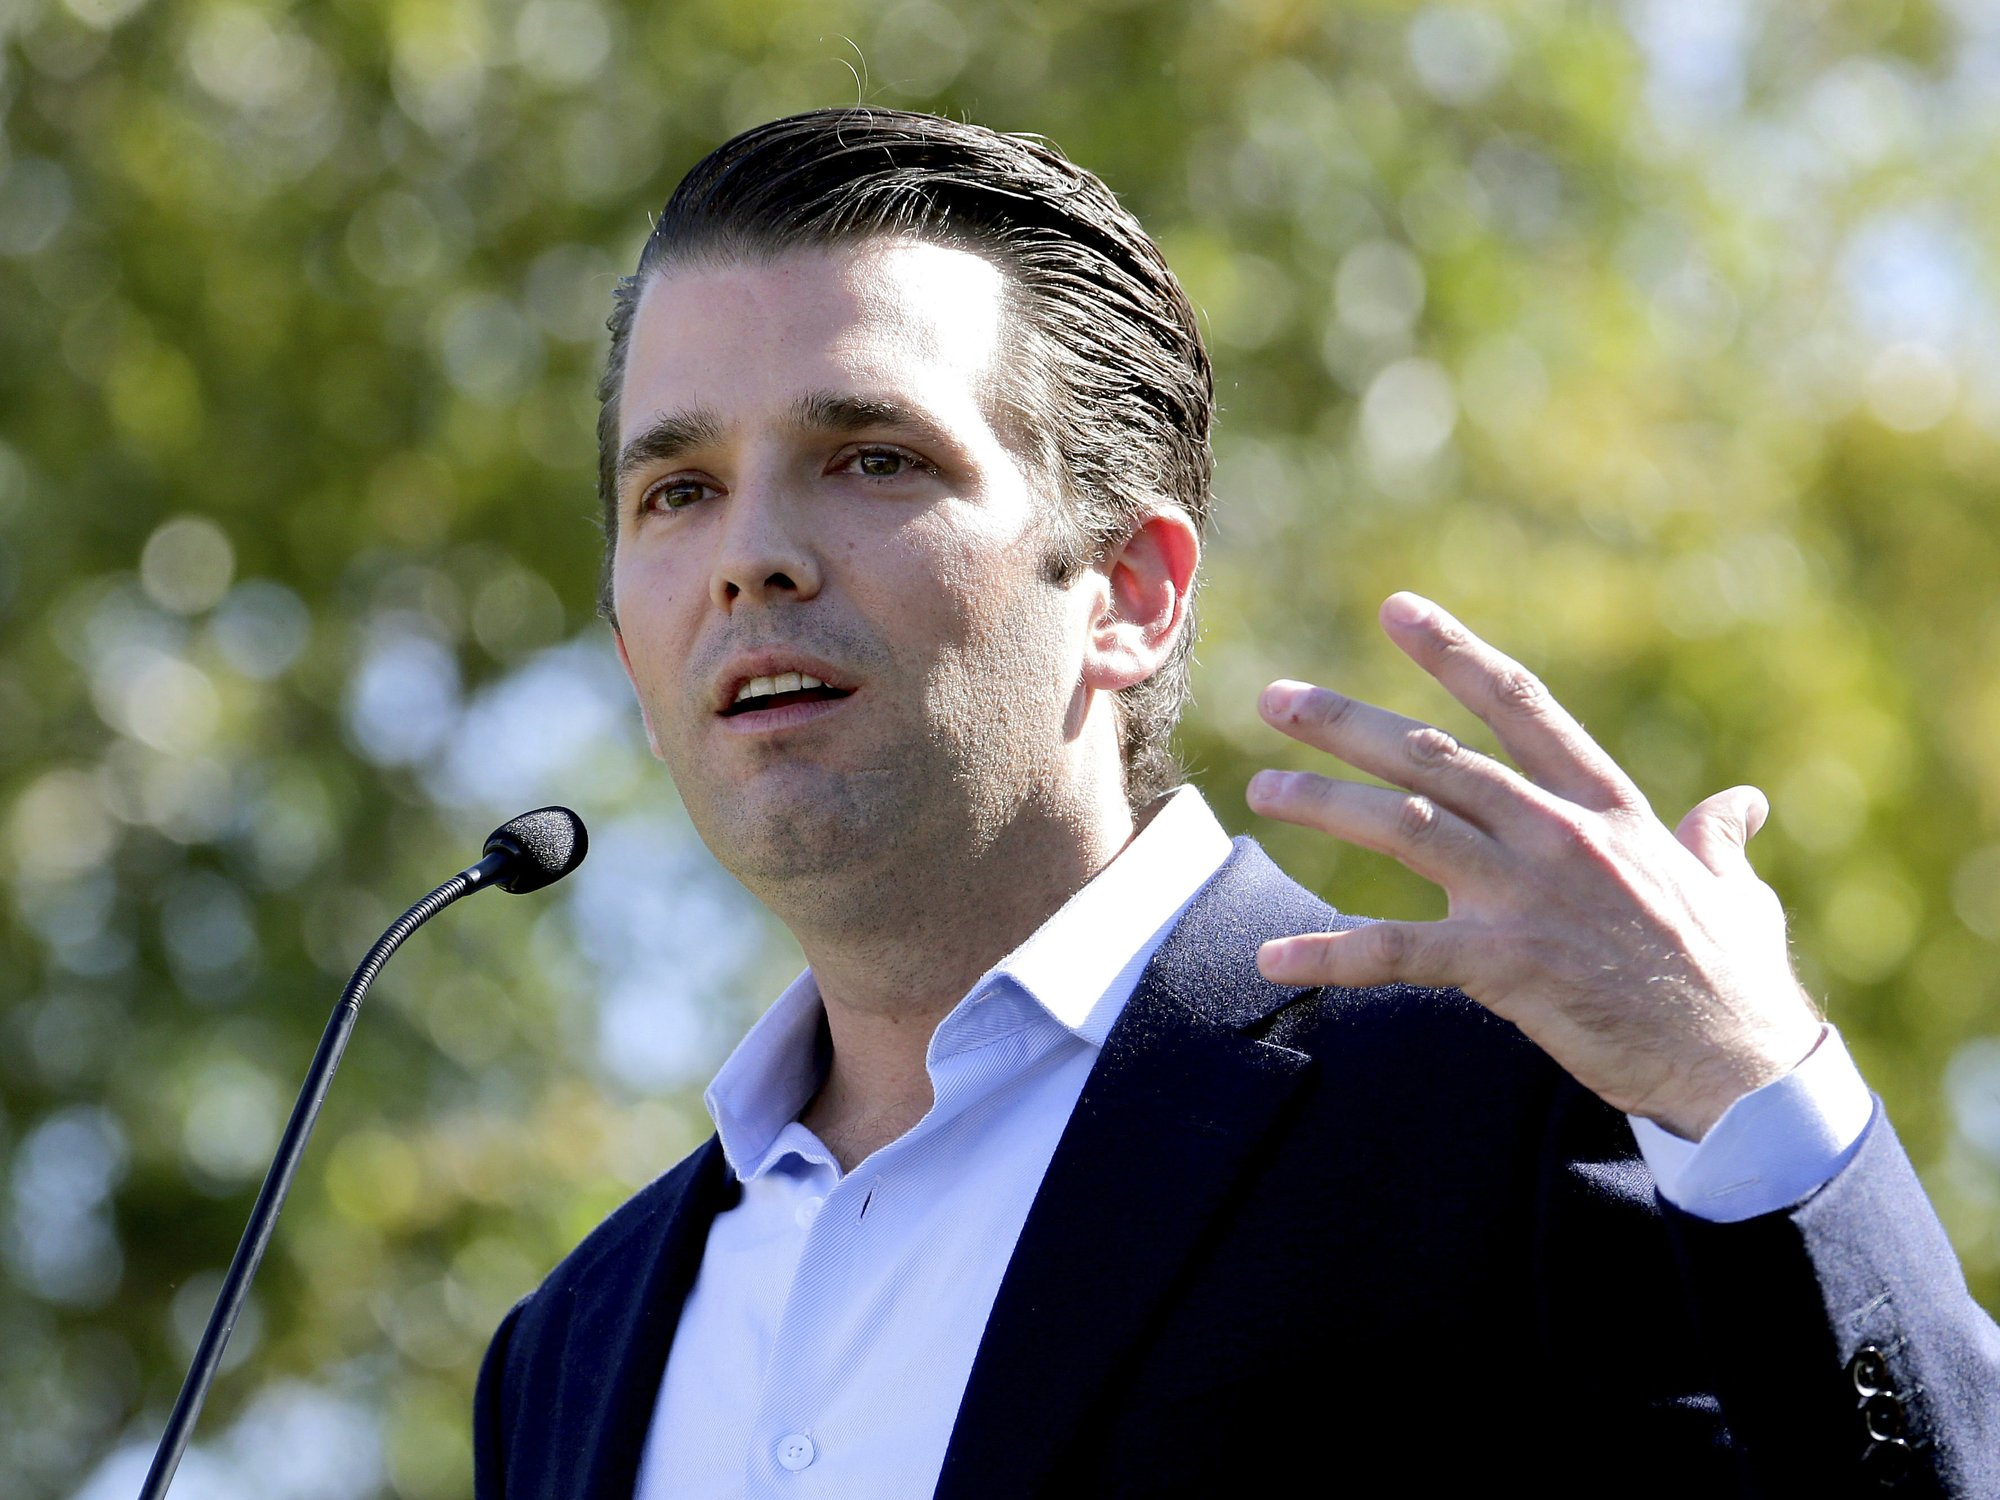 Report: Trump Jr. was promised damaging info about Clinton